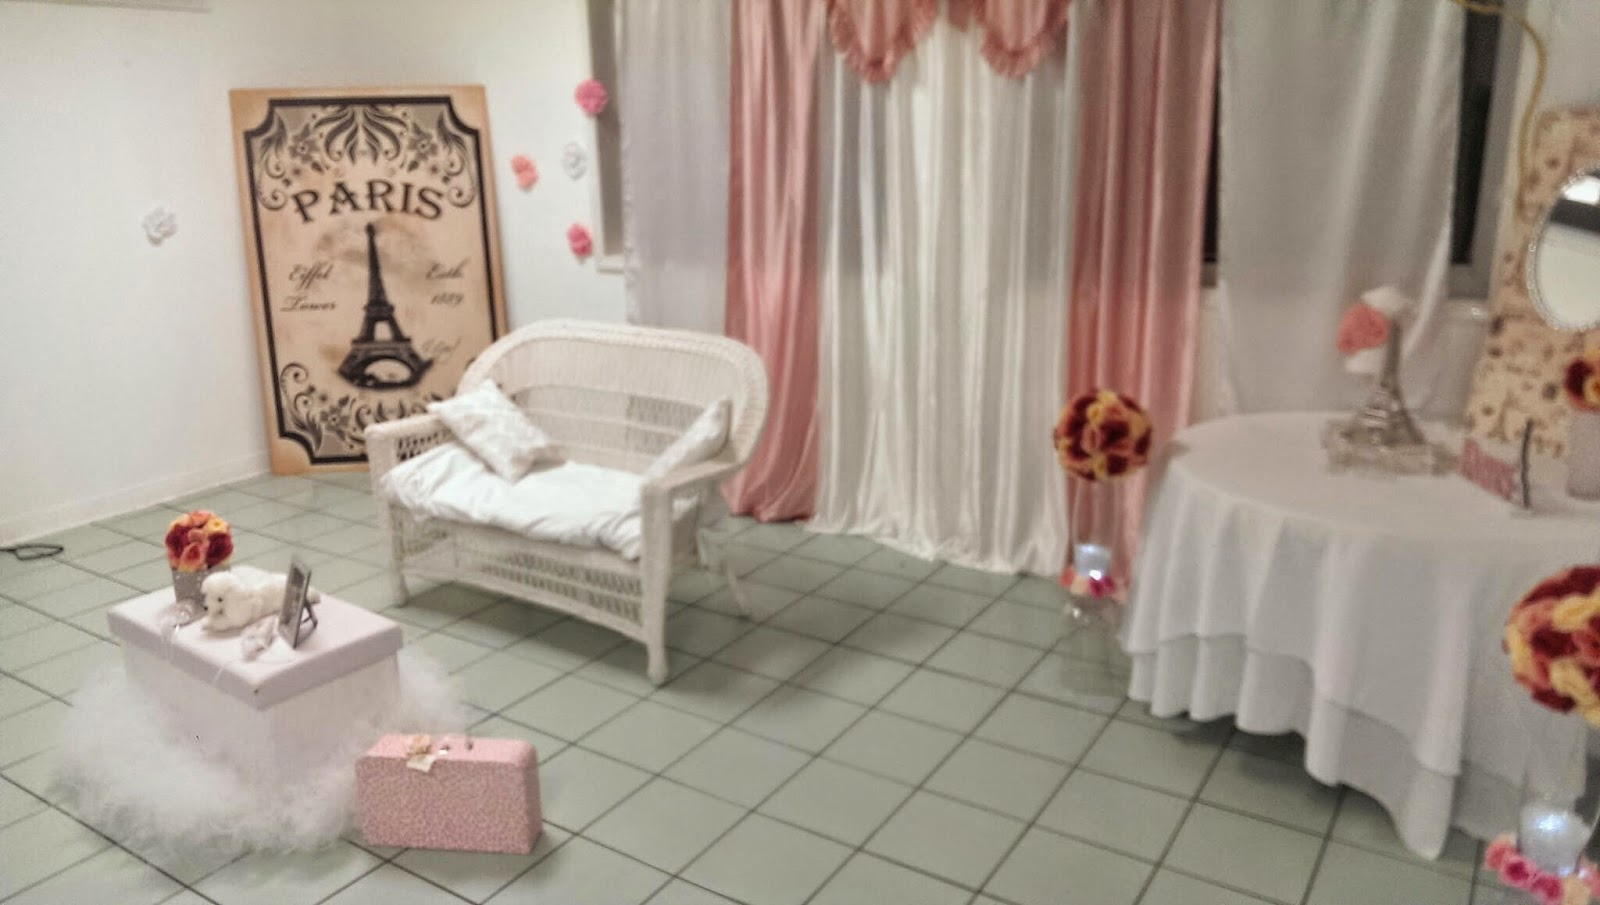 baby shower decor nyc  decorating ideas, Baby shower